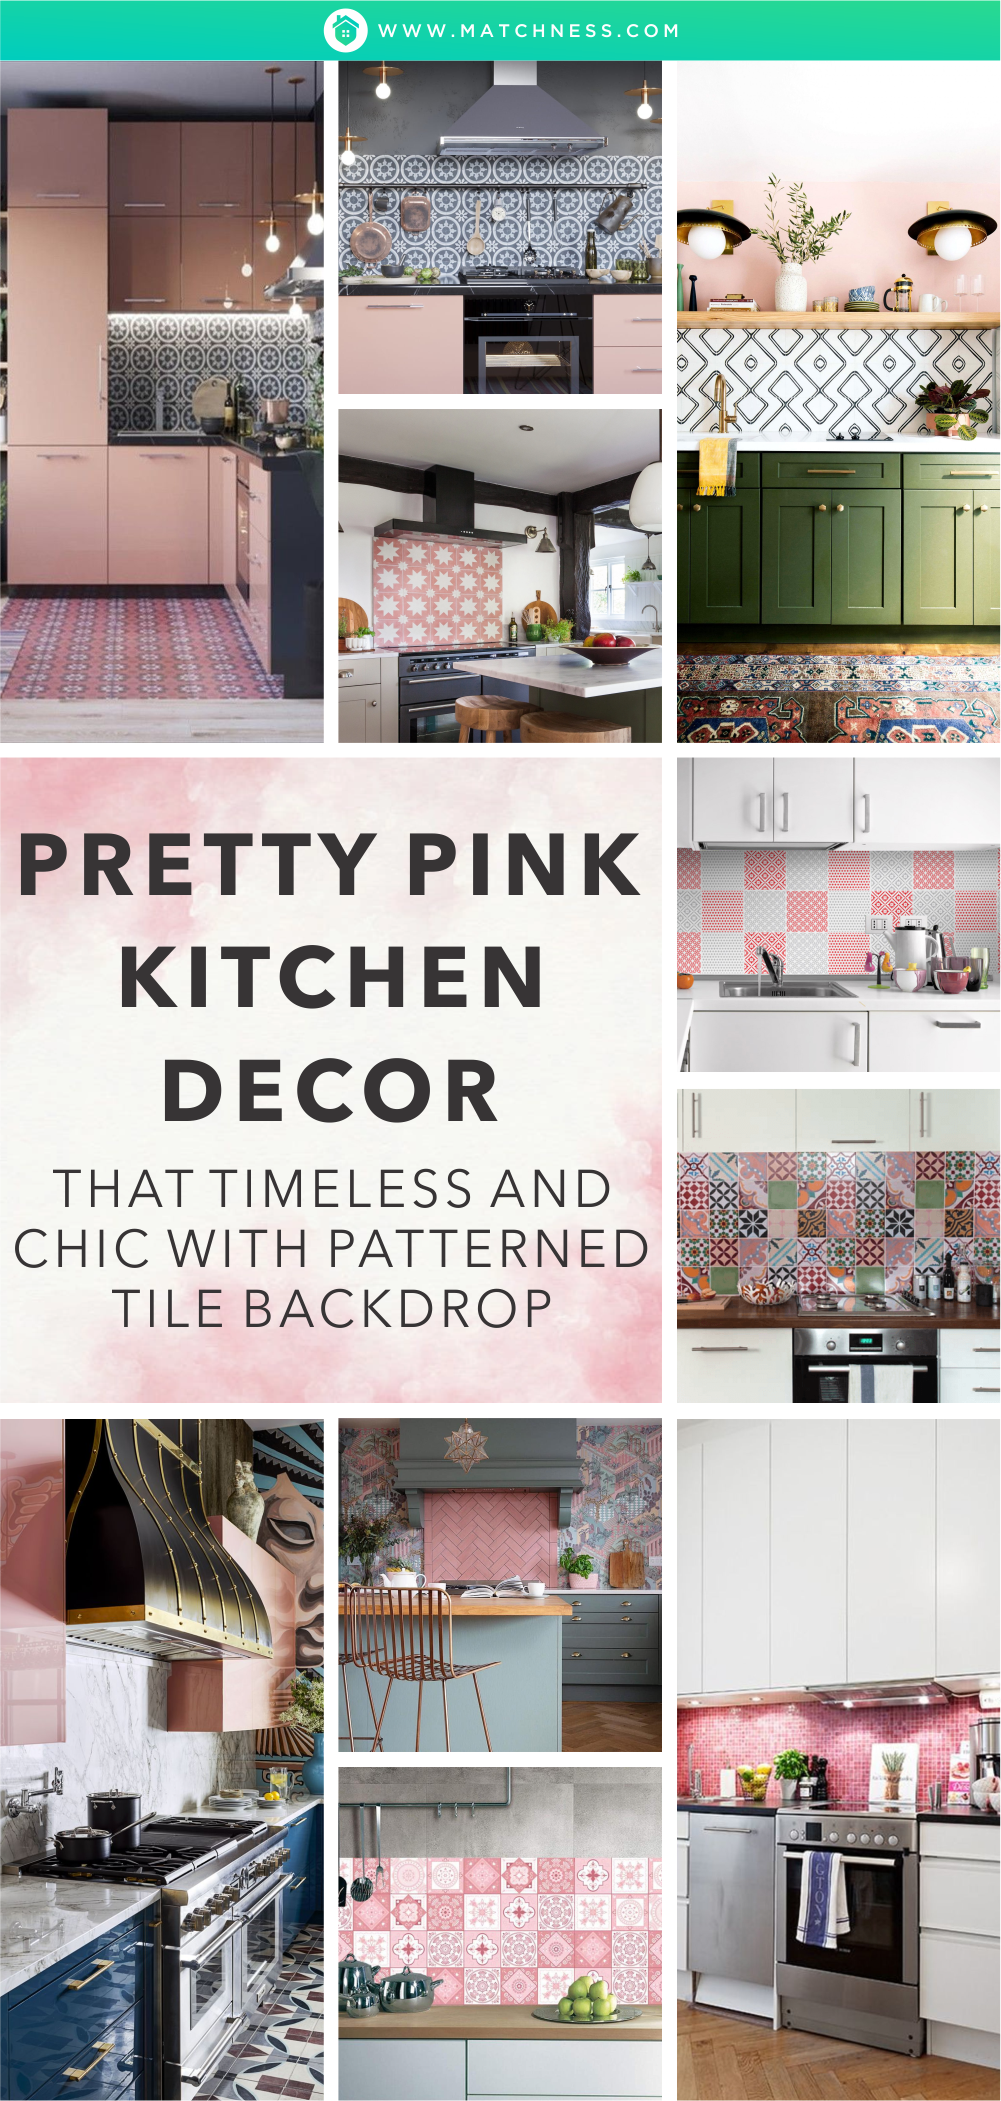 Pretty-pink-kitchen-decor-that-timeless-and-chic-with-patterned-tile-backdrop-1